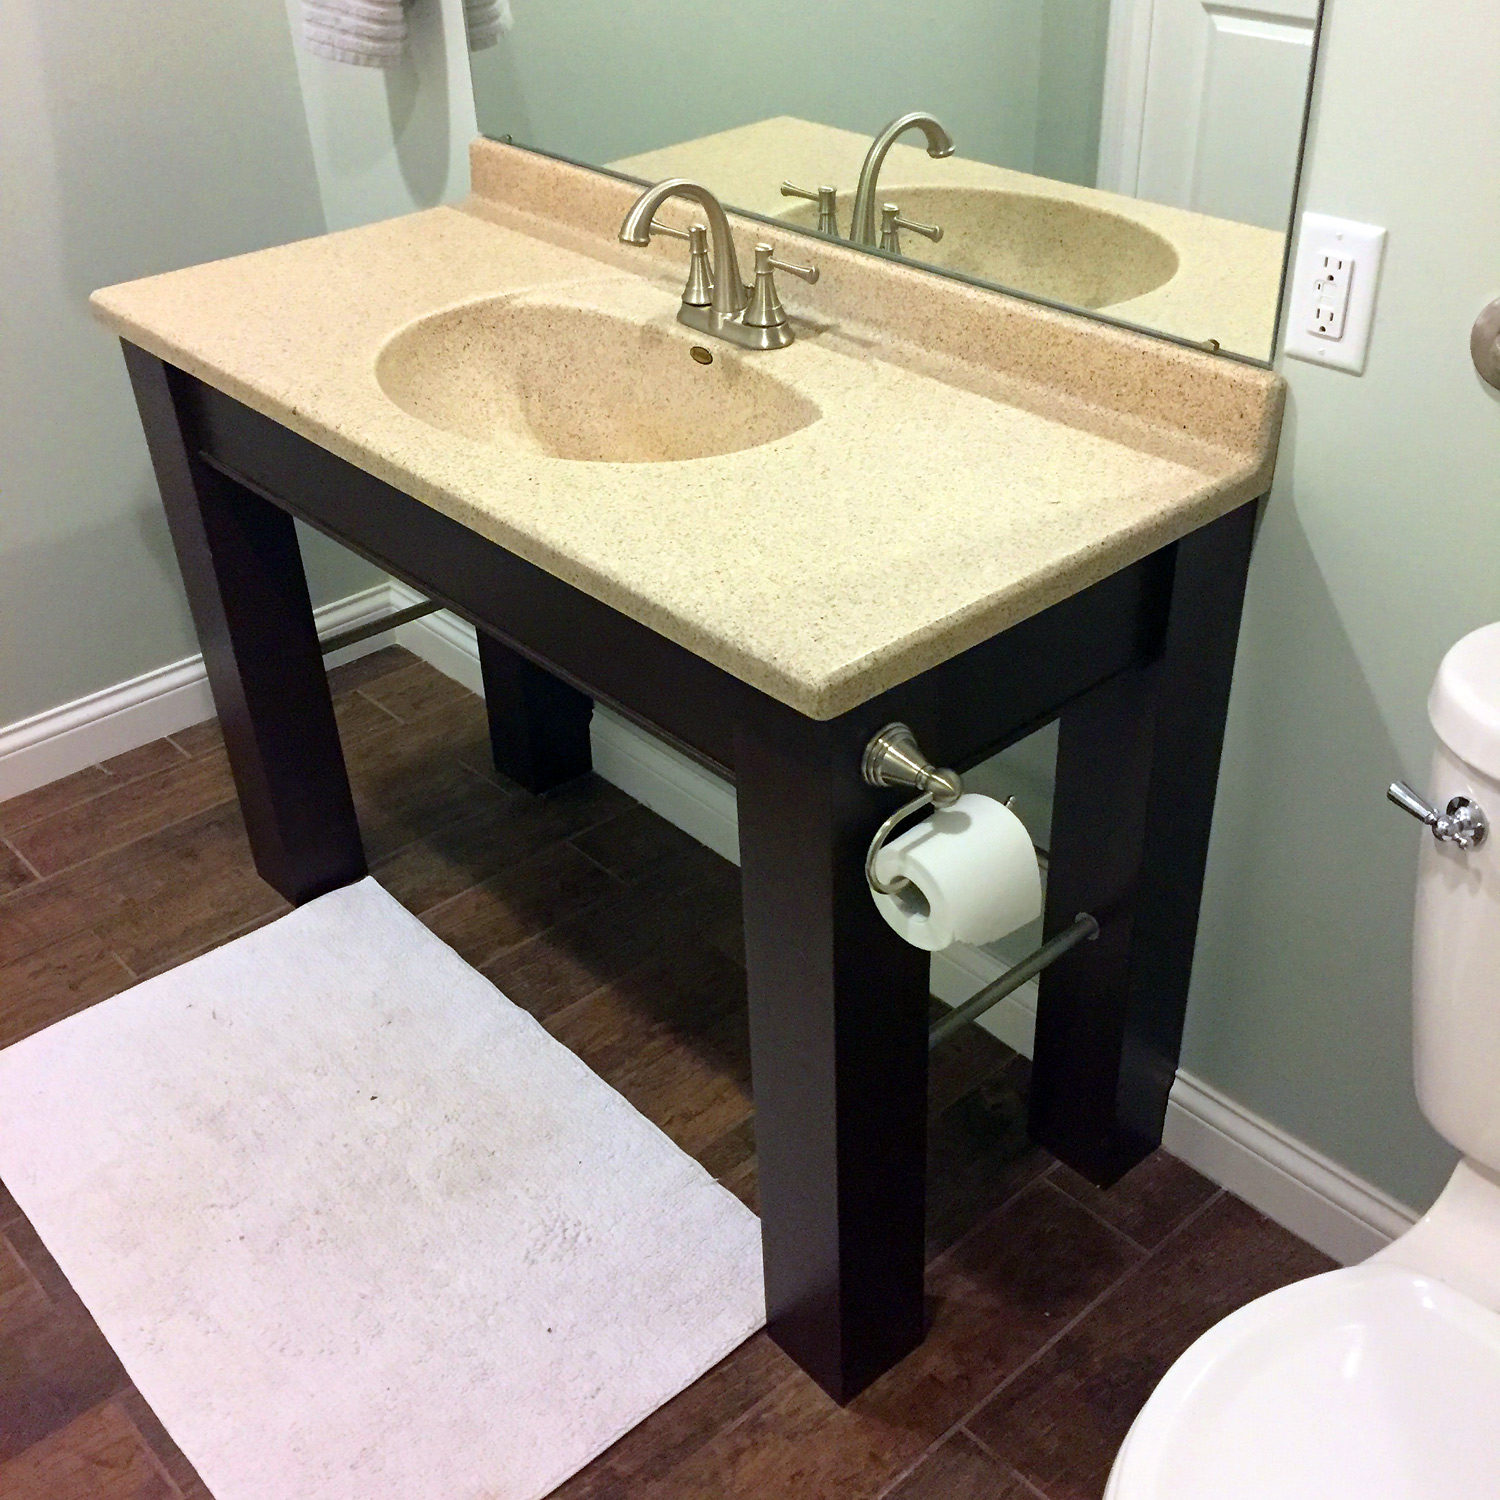 Make An ADA Compliant Vanity For Your Bathroom Christian Moist - Ada approved bathroom